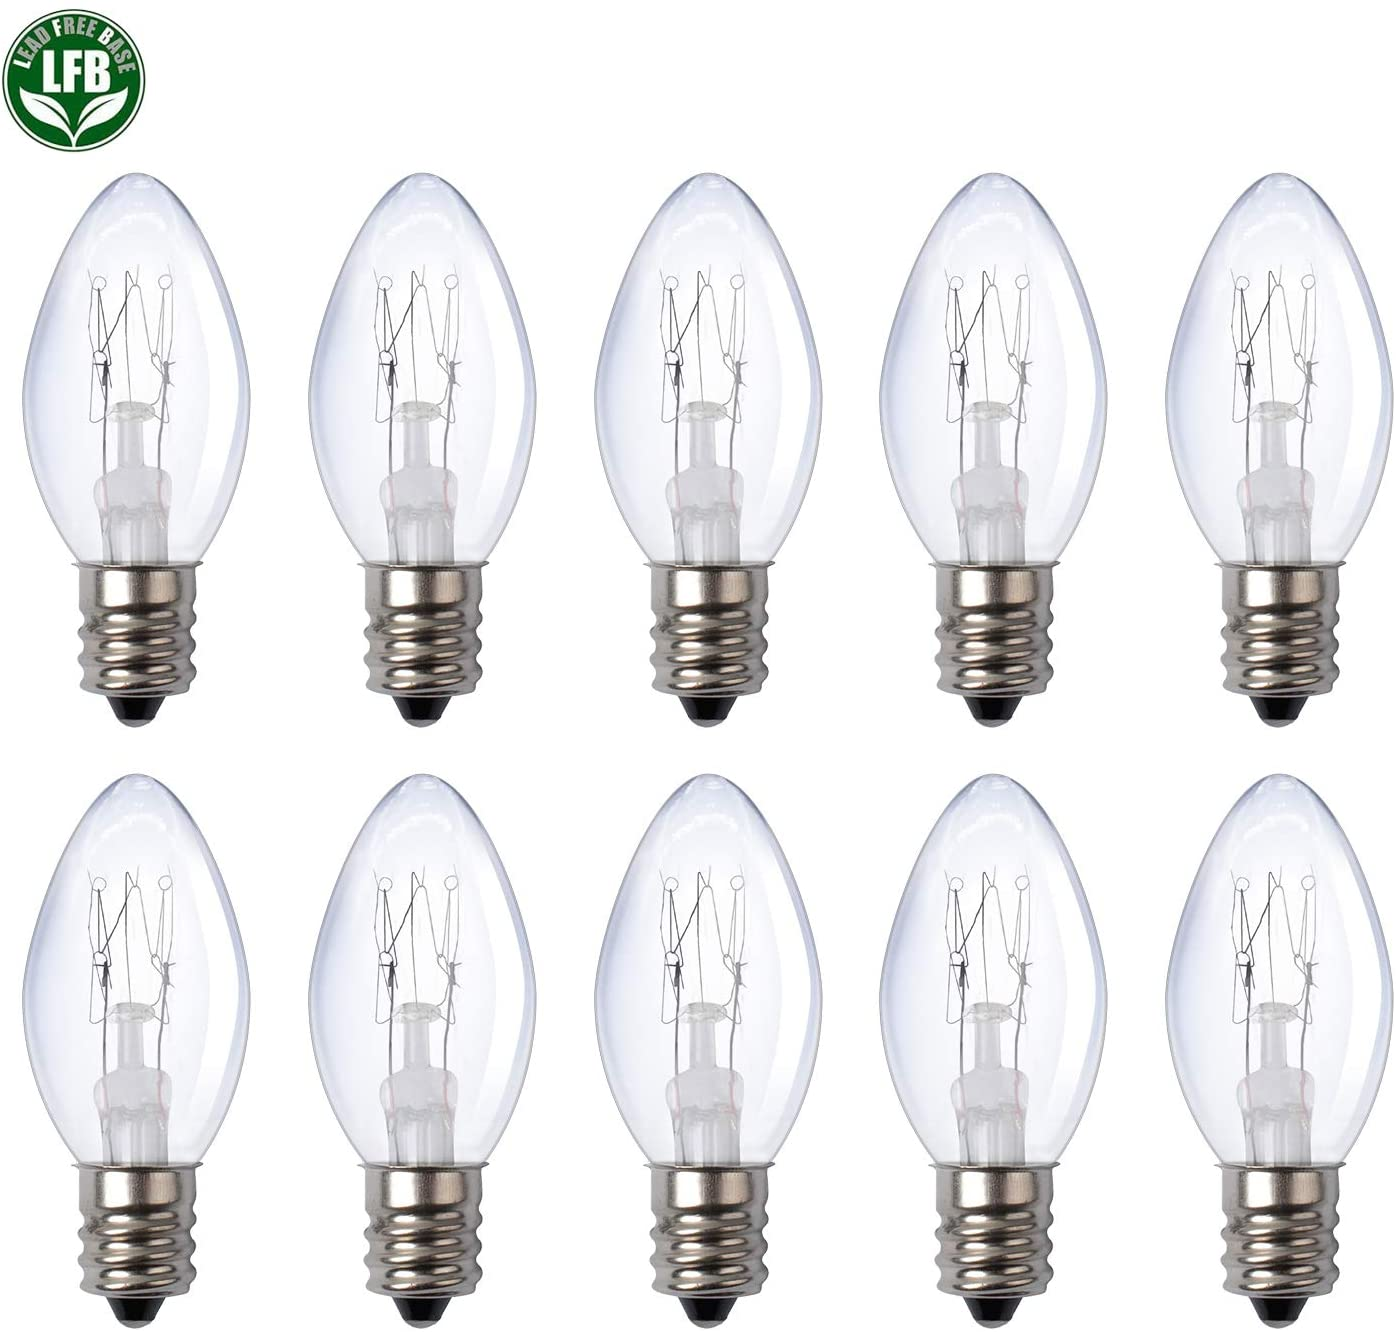 10-Pack of 7 Watt Light Bulbs Long Lasting Scentsy Bulb for Oil Burner Plug-in Night Light and Candle Warmers